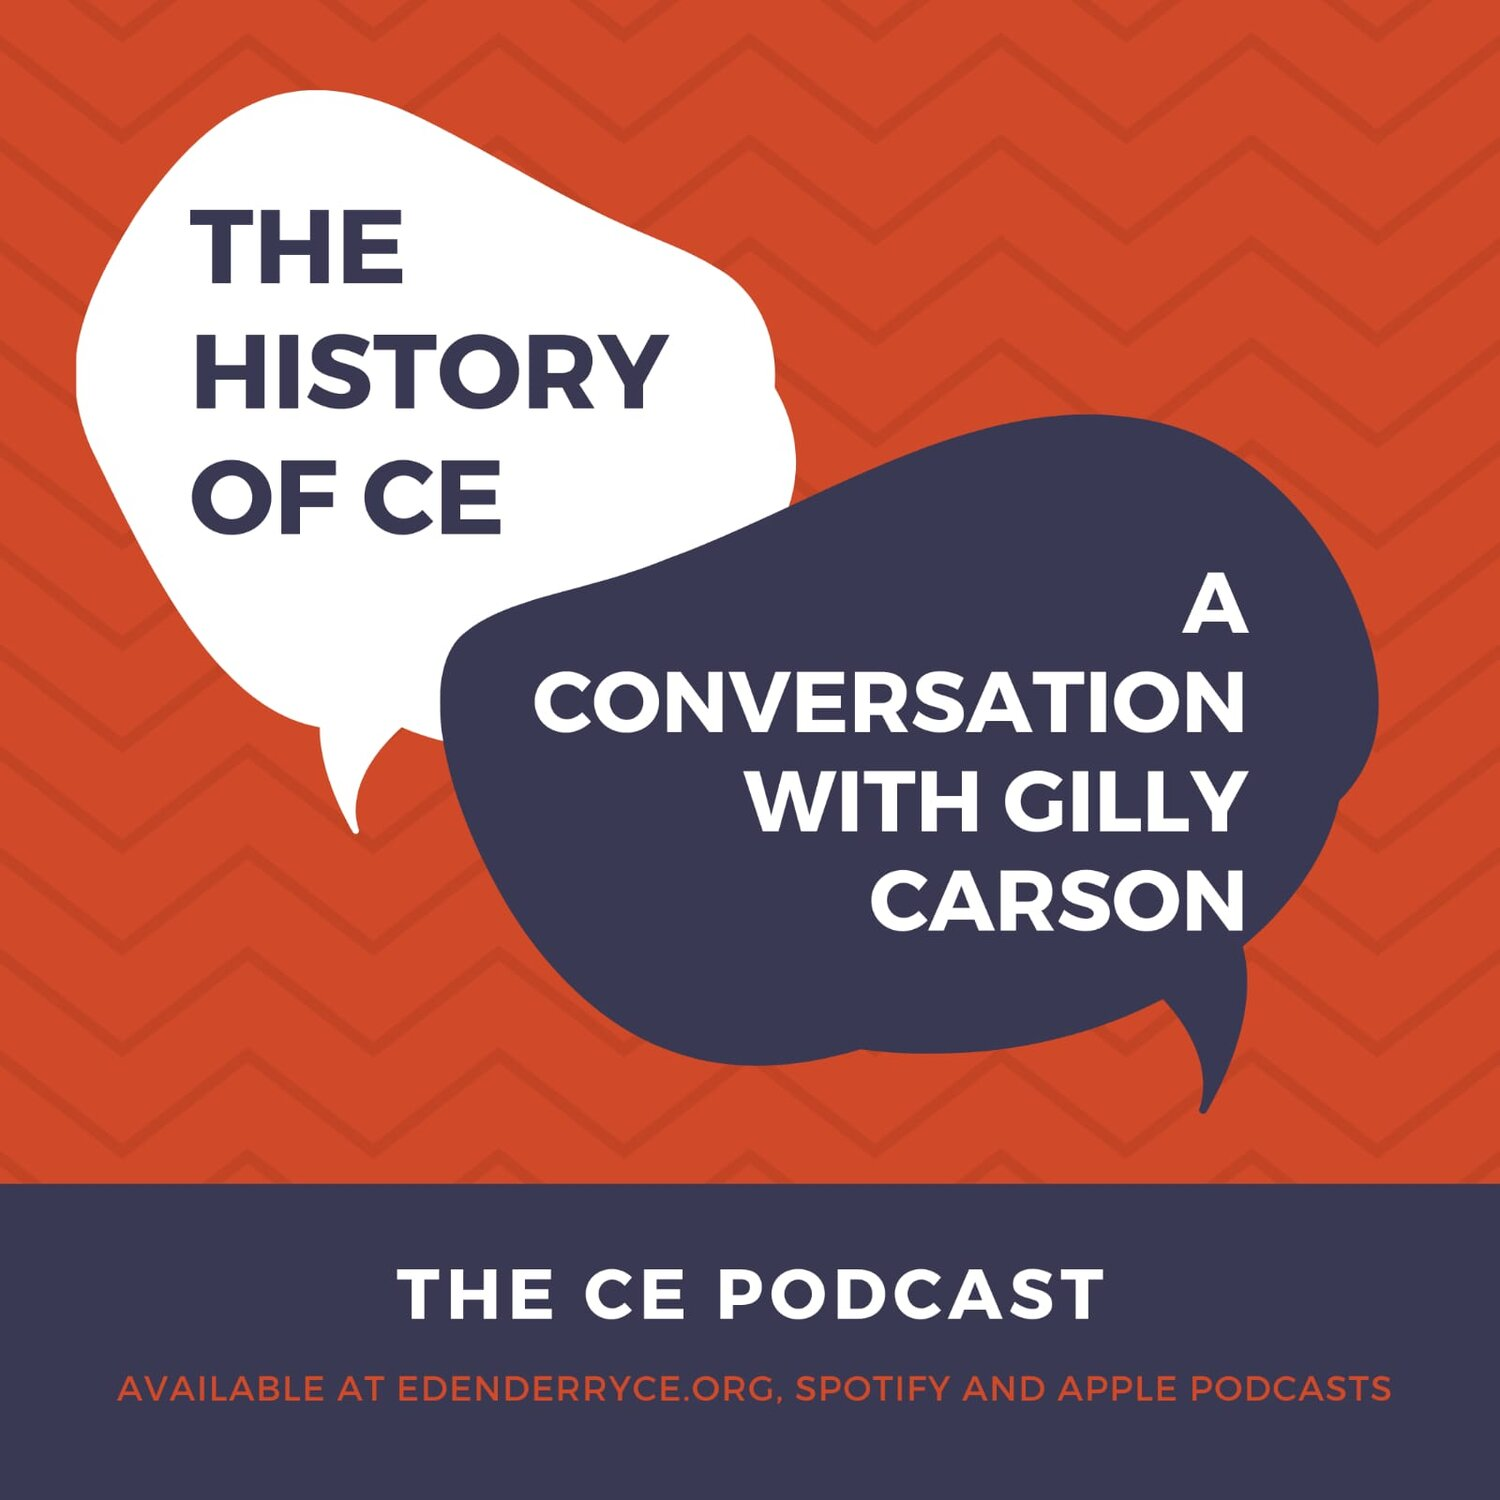 3 || The CE Podcast ||  A Conversation with Gilly Carson: The History of CE || Scott & Henry